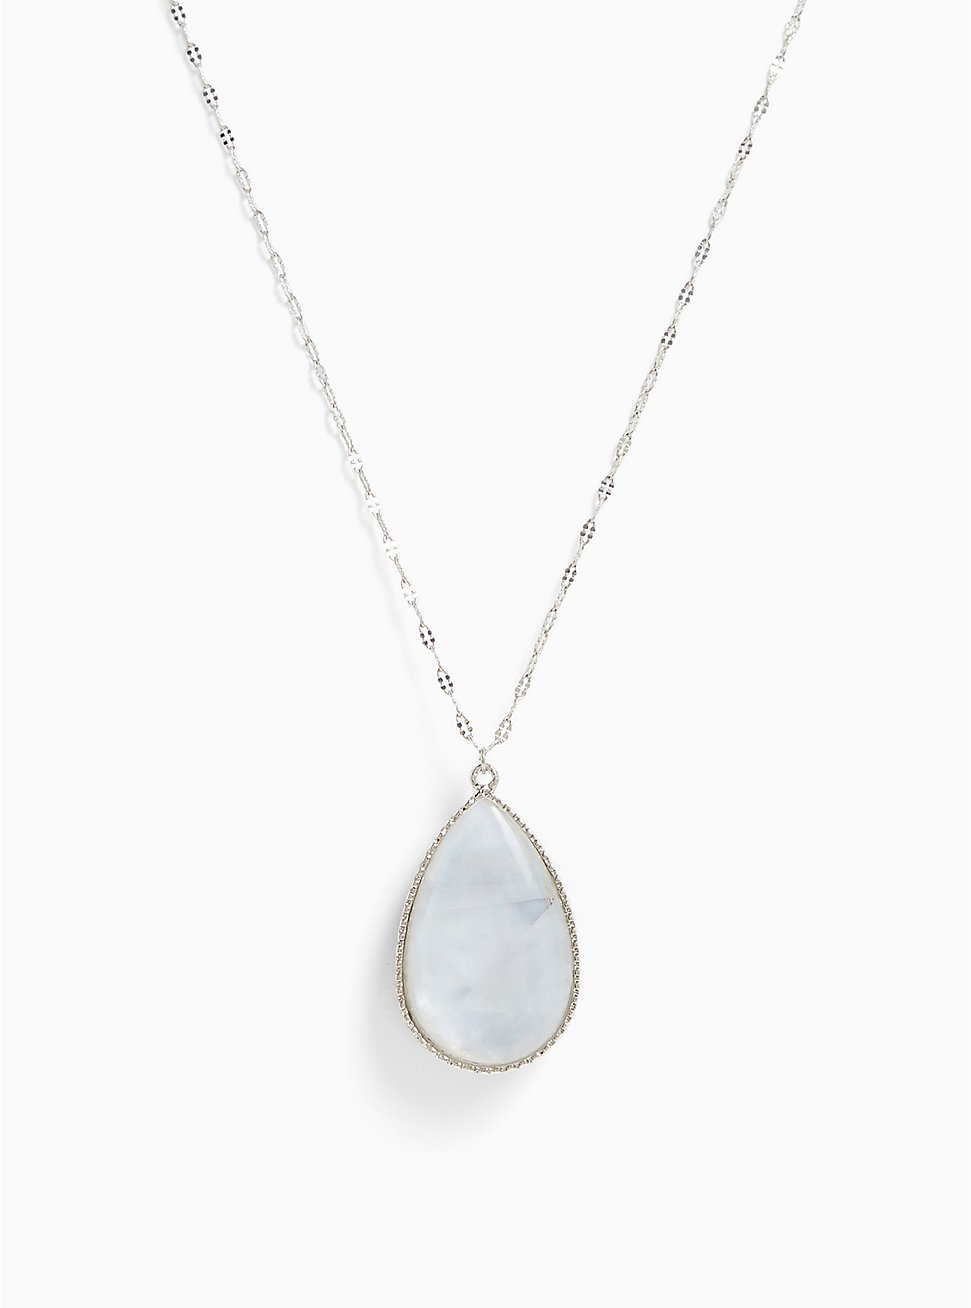 Silver-Tone Abalone Reversible Teardrop Pendant Necklace, , hi-res